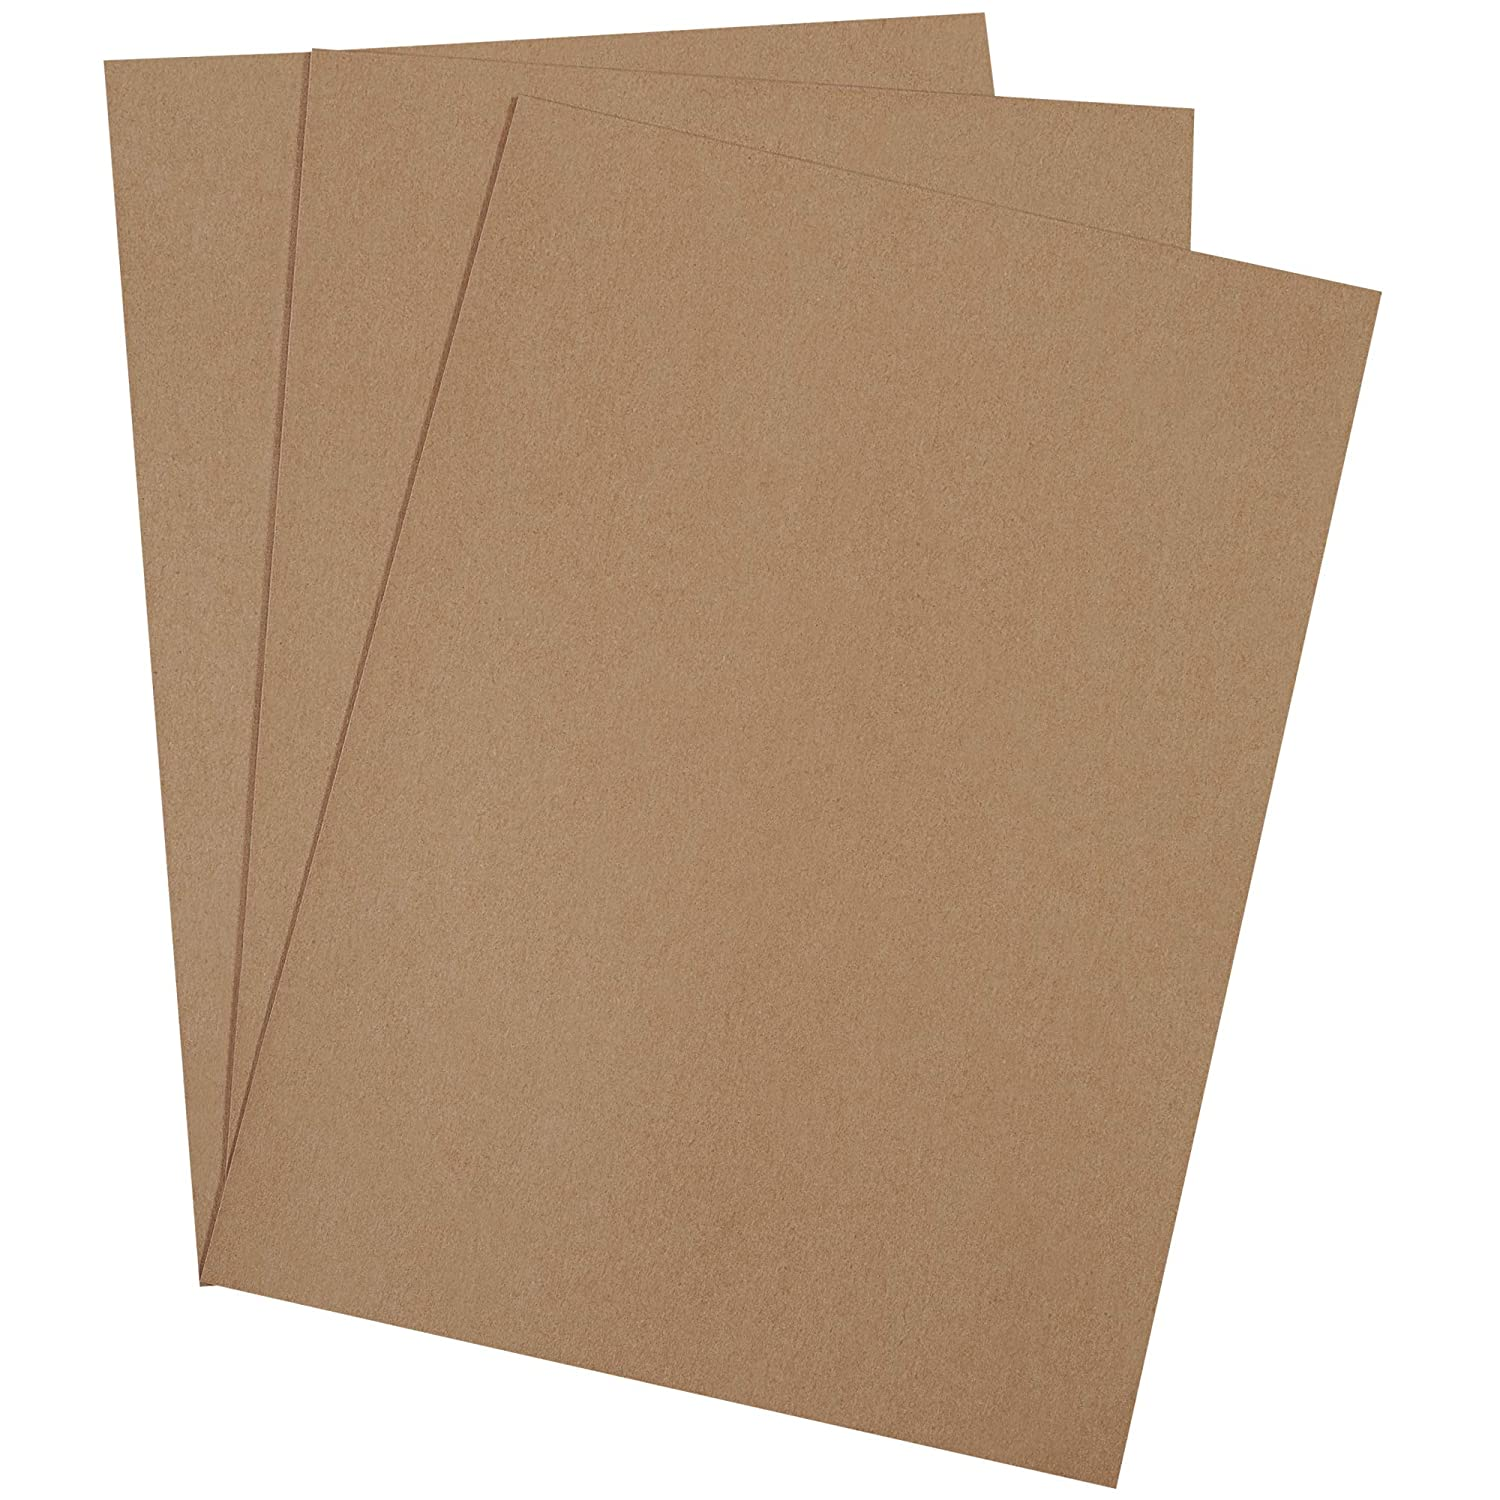 Top Pack Memphis Mall Supply Heavy-Duty 2021 spring and summer new Chipboard Pads 70 x 38